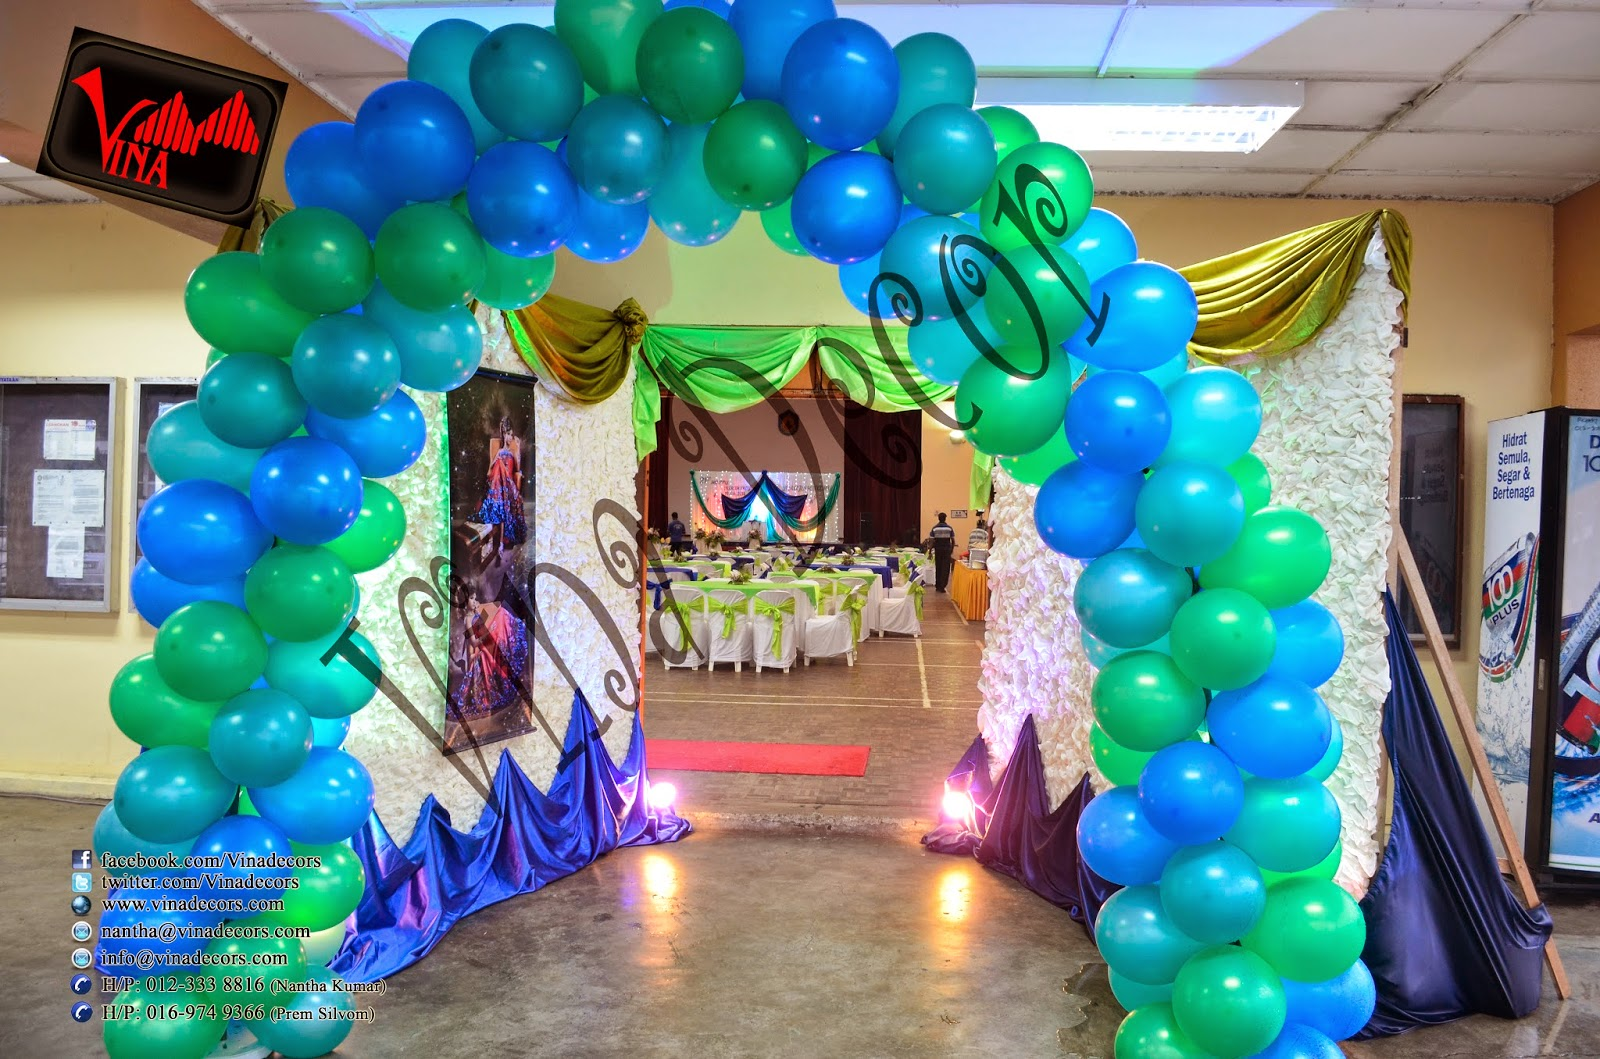 Dancing Peacock Concept / Theme, 21st Birthday at Dewan Dato Ahmad Razali, Kampung Melayu Ampang, 43100 Ampang, Selangor, Malaysia (Ampang Hall) for B. Rajeshwary  (Setup for Balloon Arch, Flower pillar, Red Carpet, Stage Scallop and Backdrop with lighting, Photography Section with Balloon Dome, Table Centerpiece, chair (cover & ribbon) and Table (cloth).